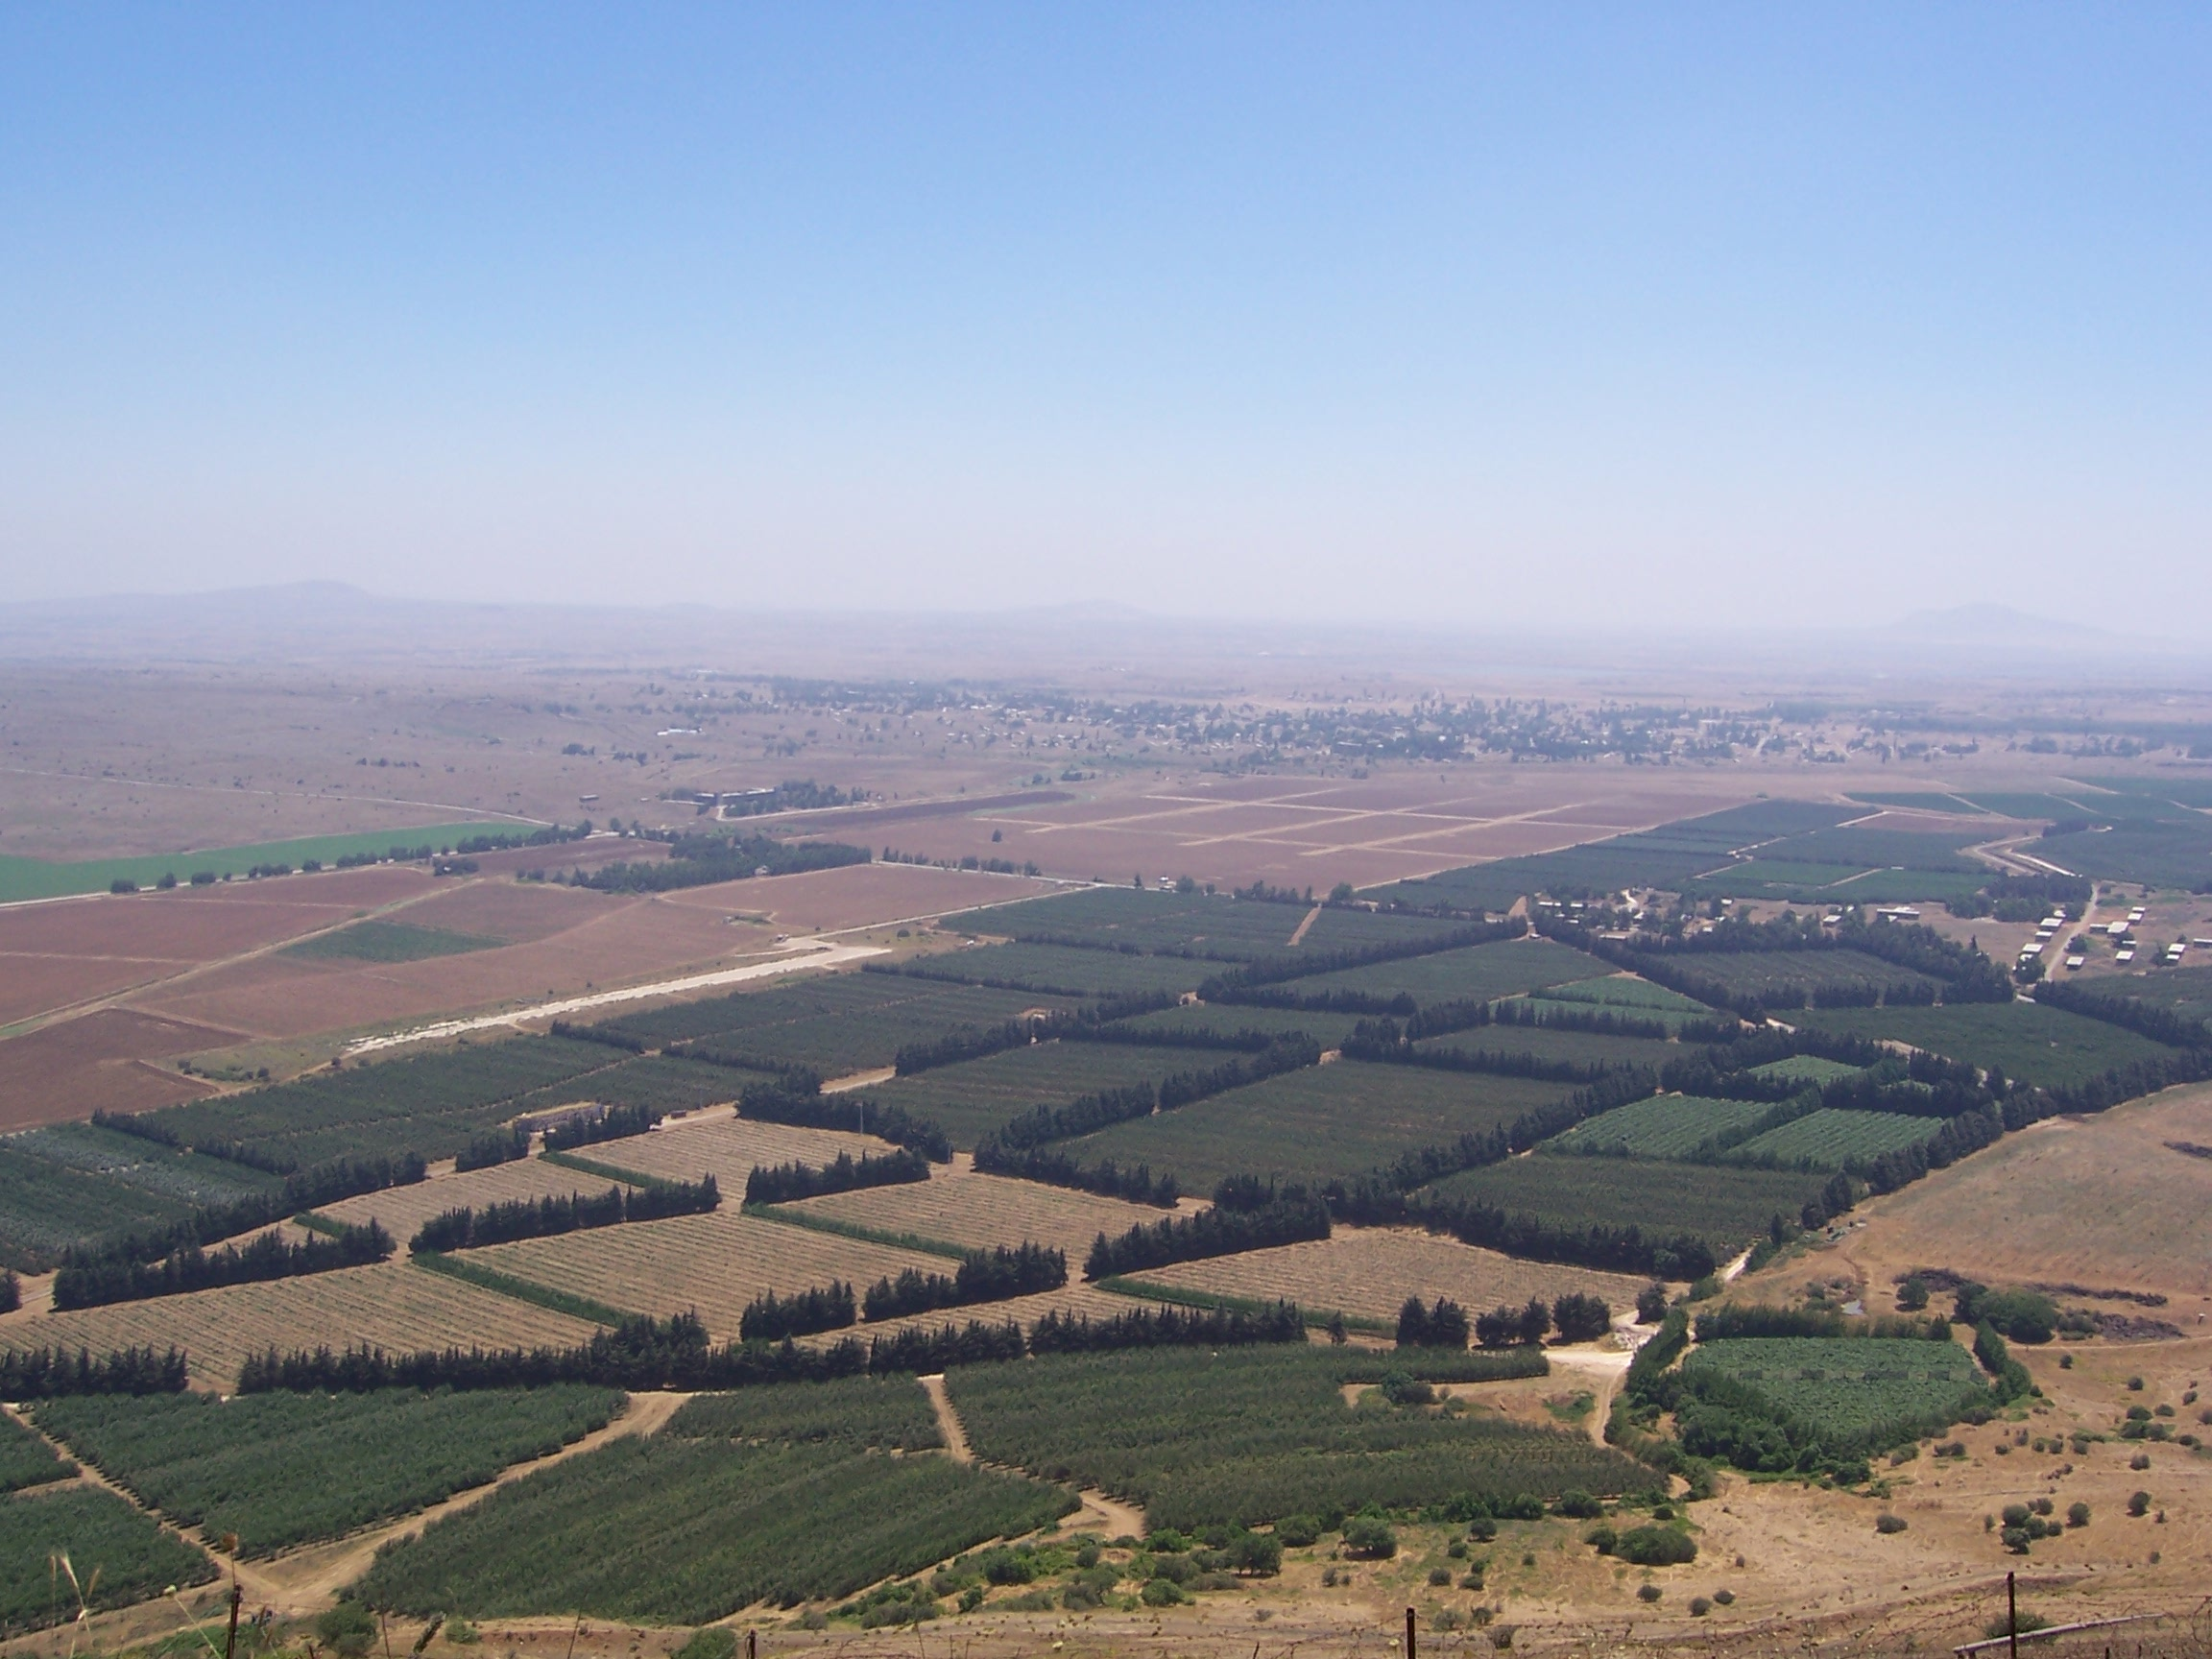 View of Galilee from the Golan Heights